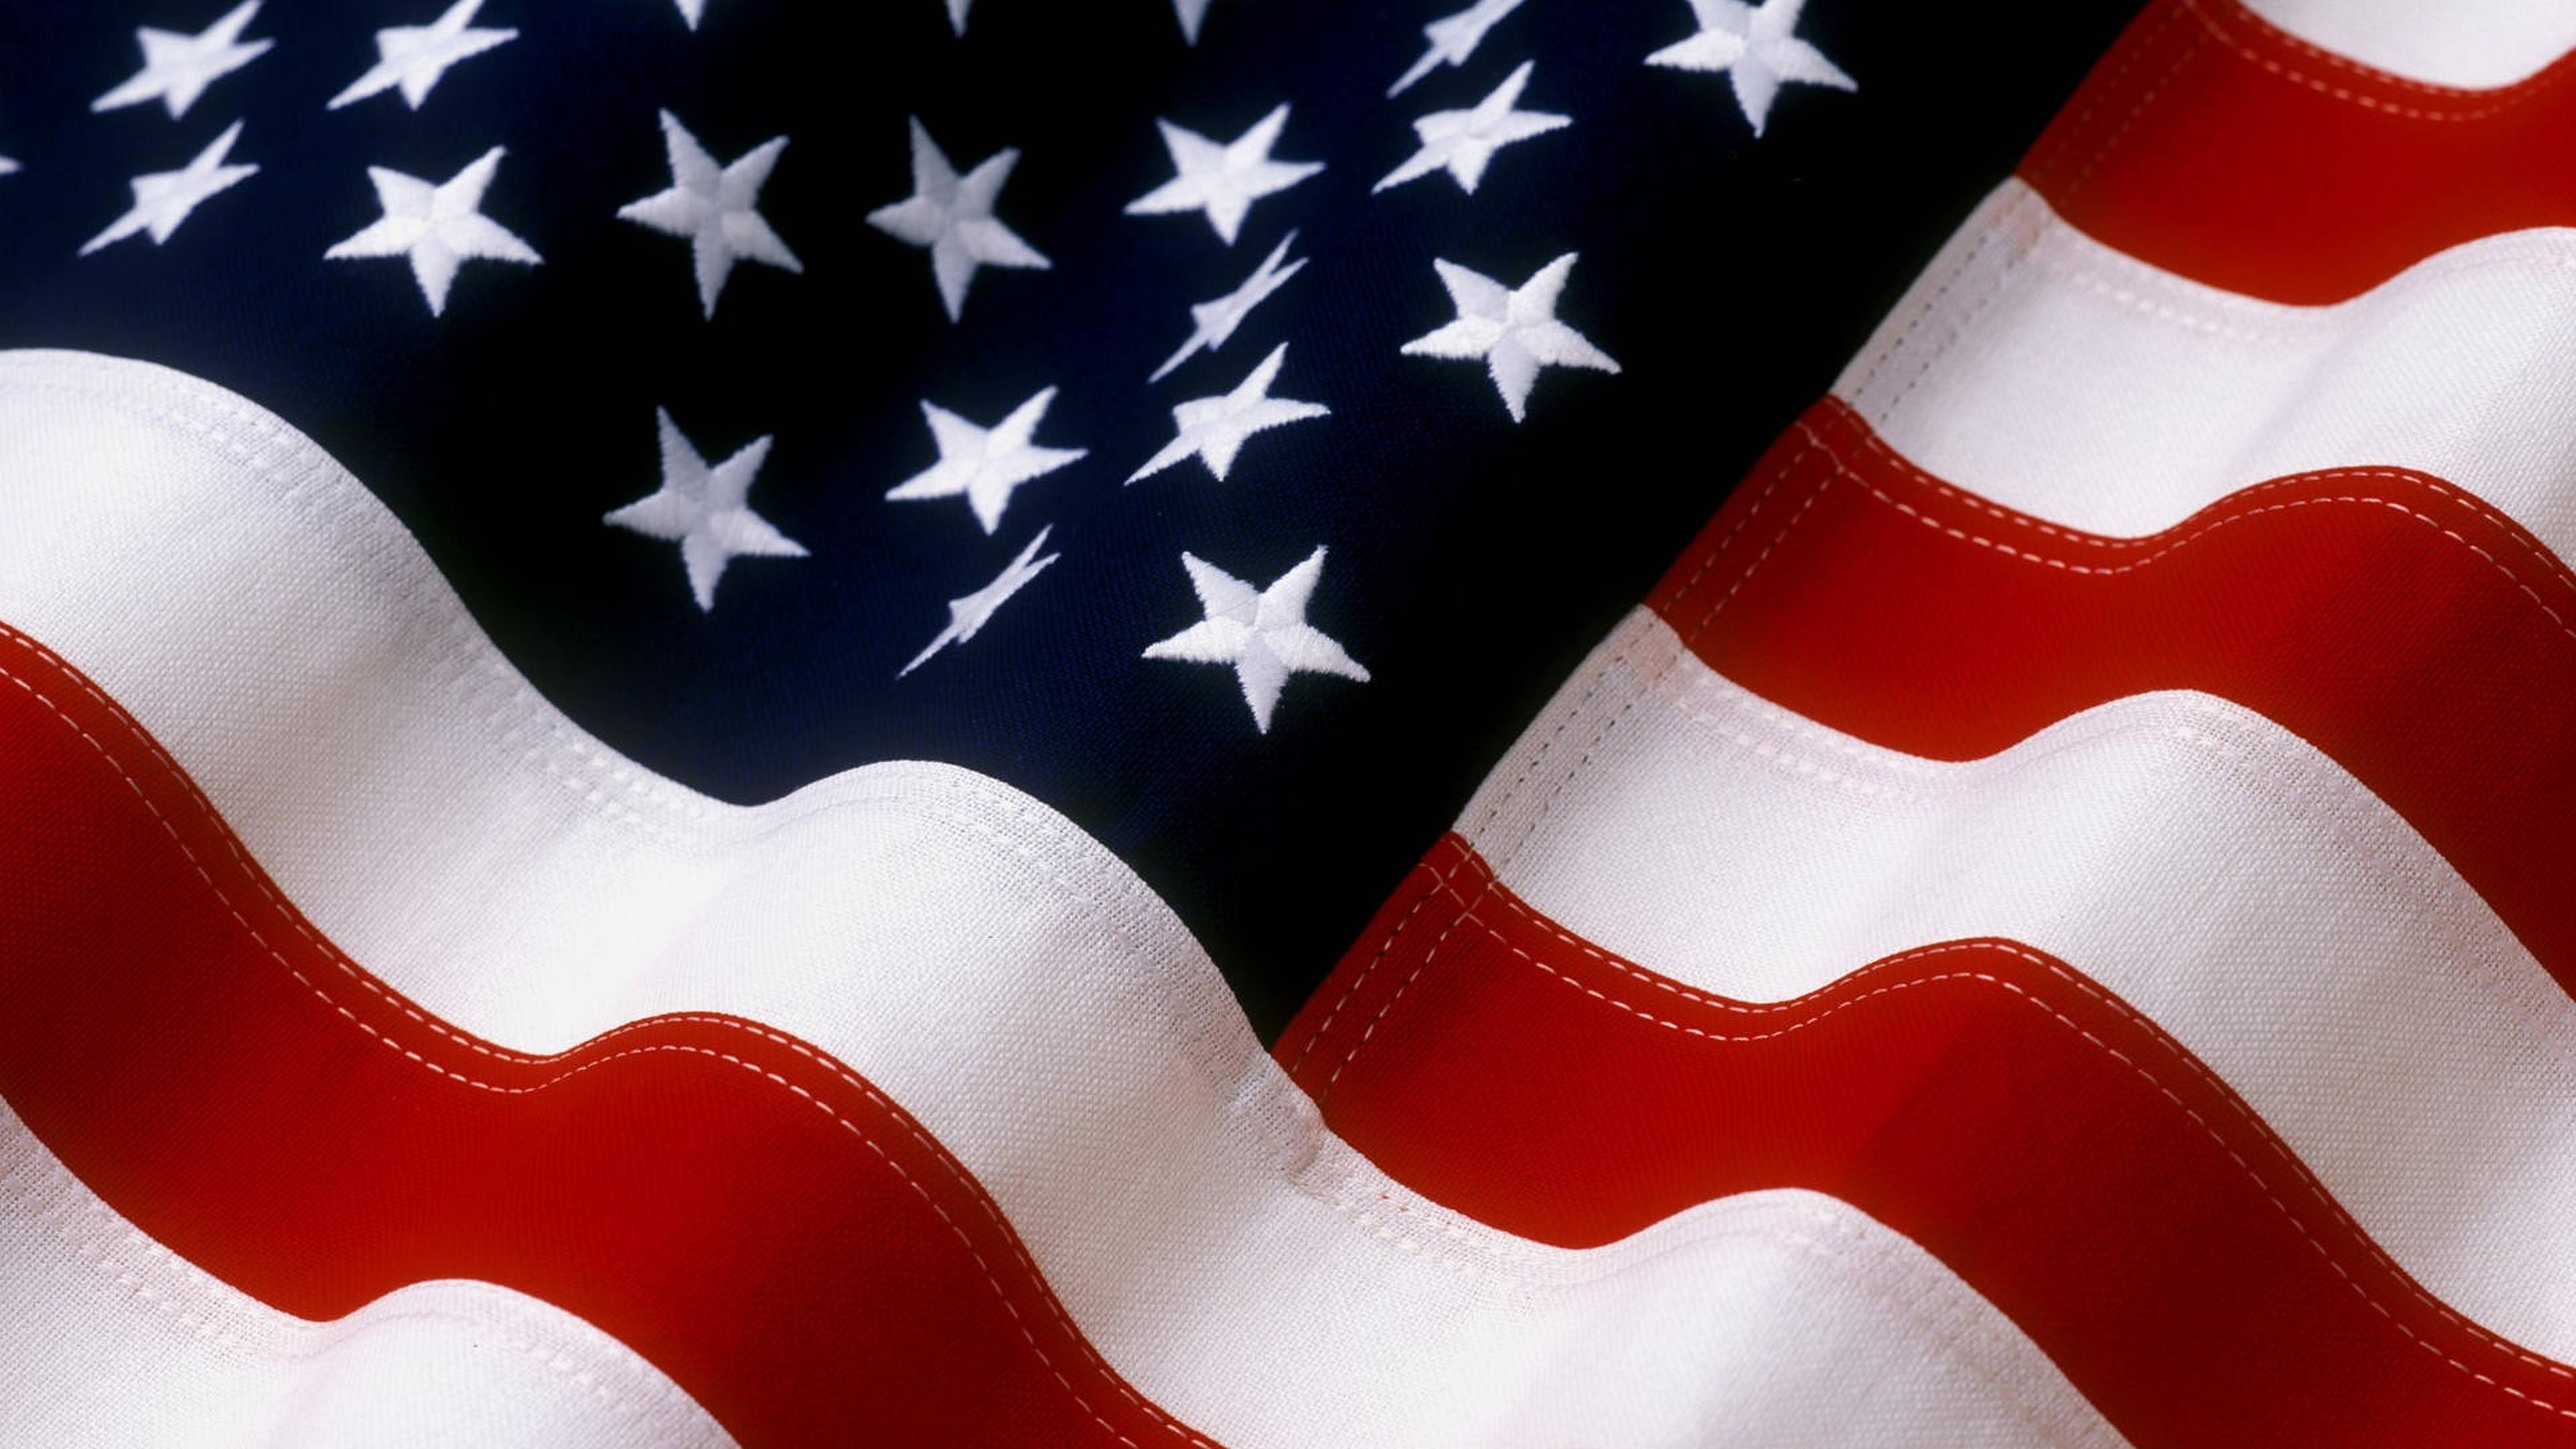 American flag backgrounds wallpaper cave wallpapers for american flag background tumblr voltagebd Image collections